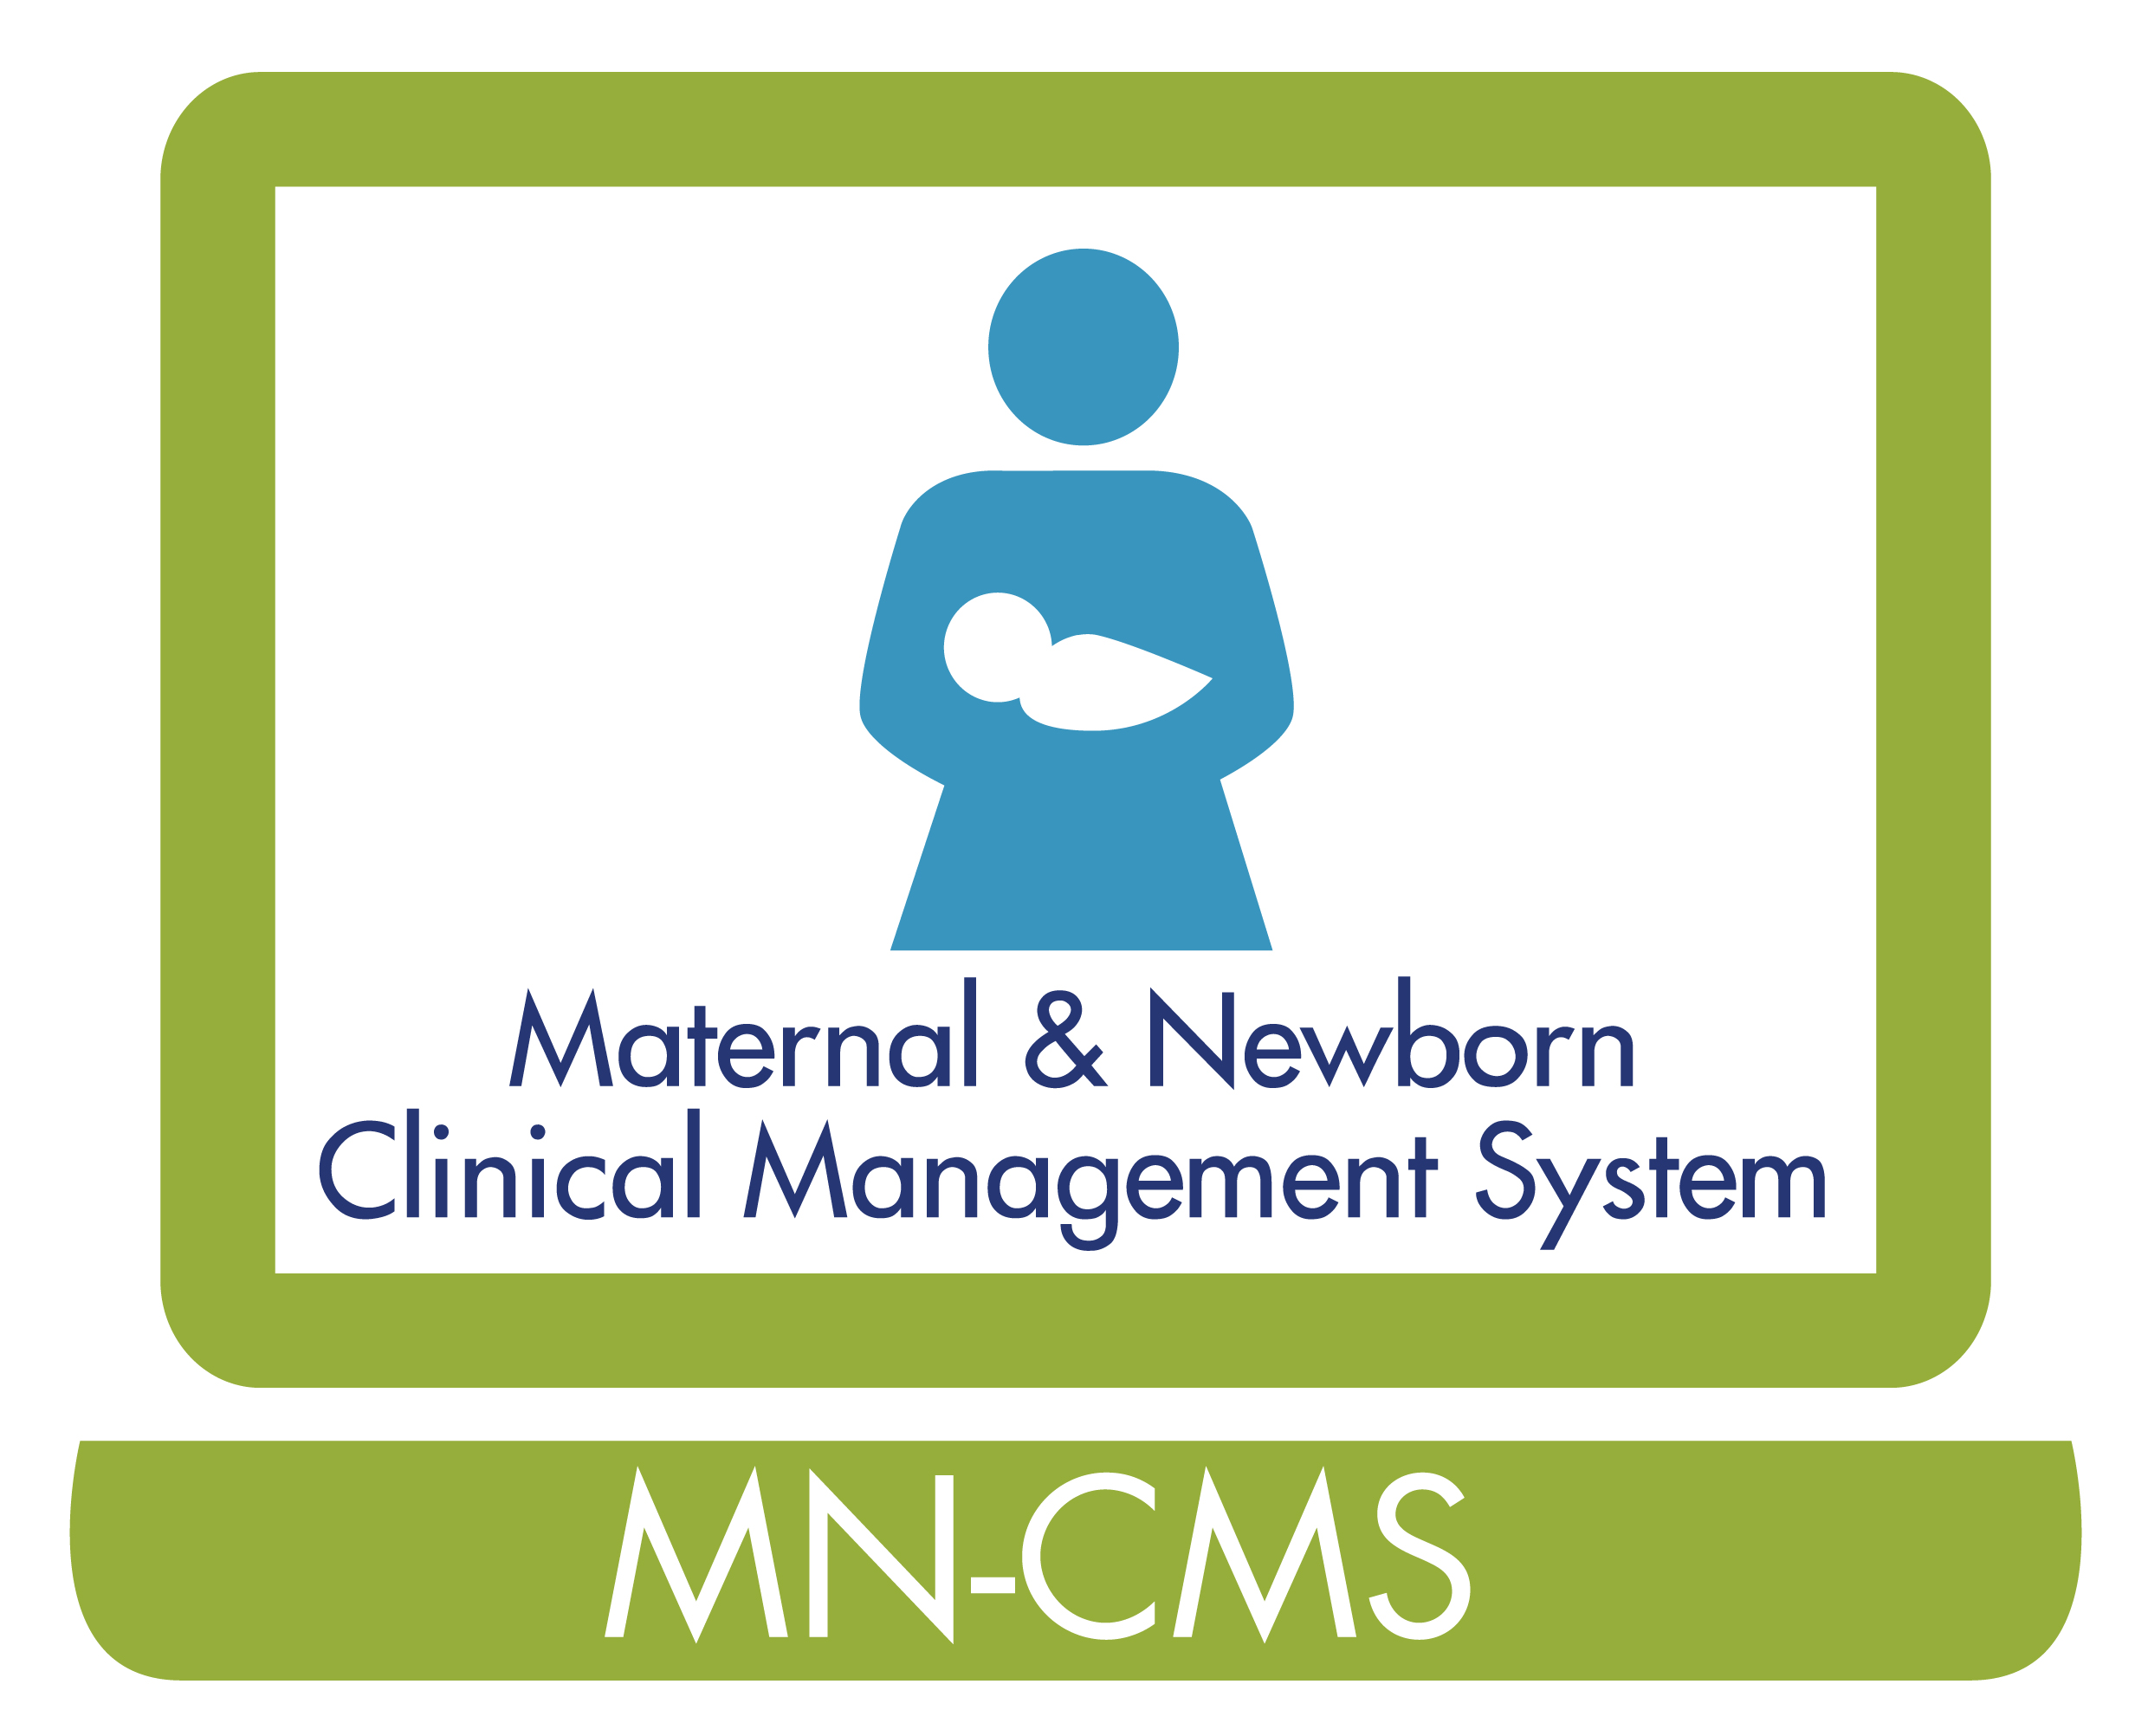 Maternal & Newborn Clinical Management System